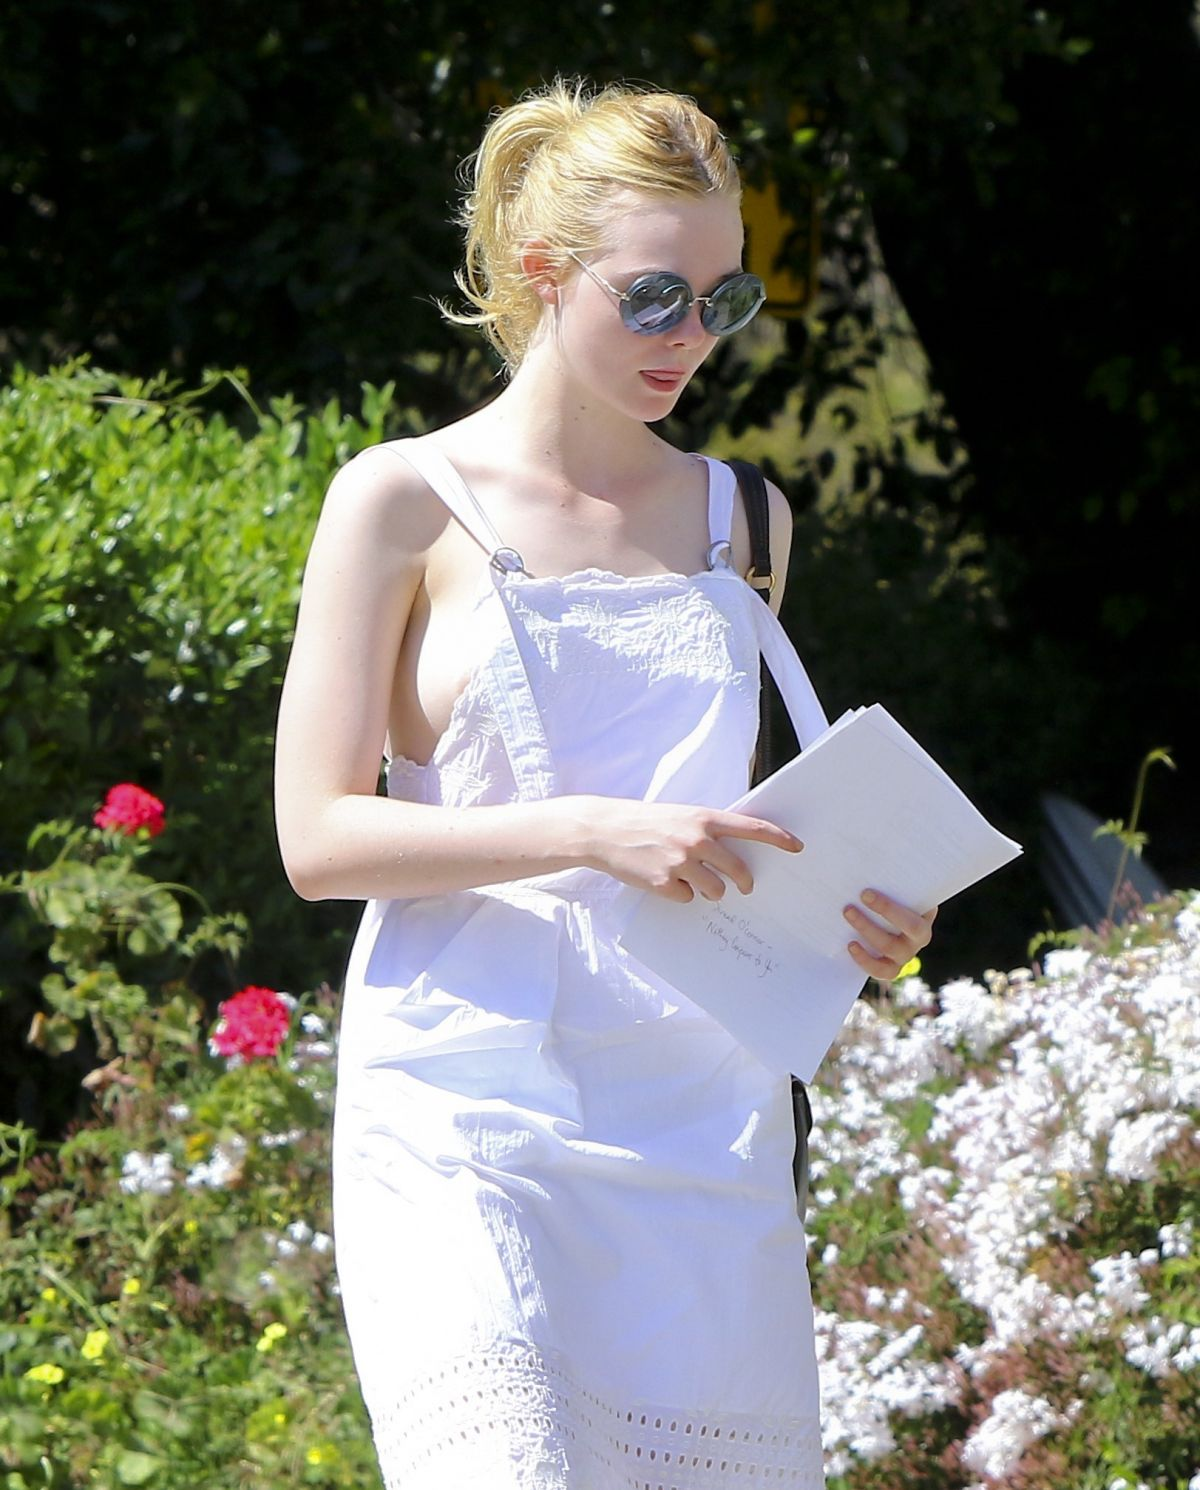 15 elle fanning - photo #11